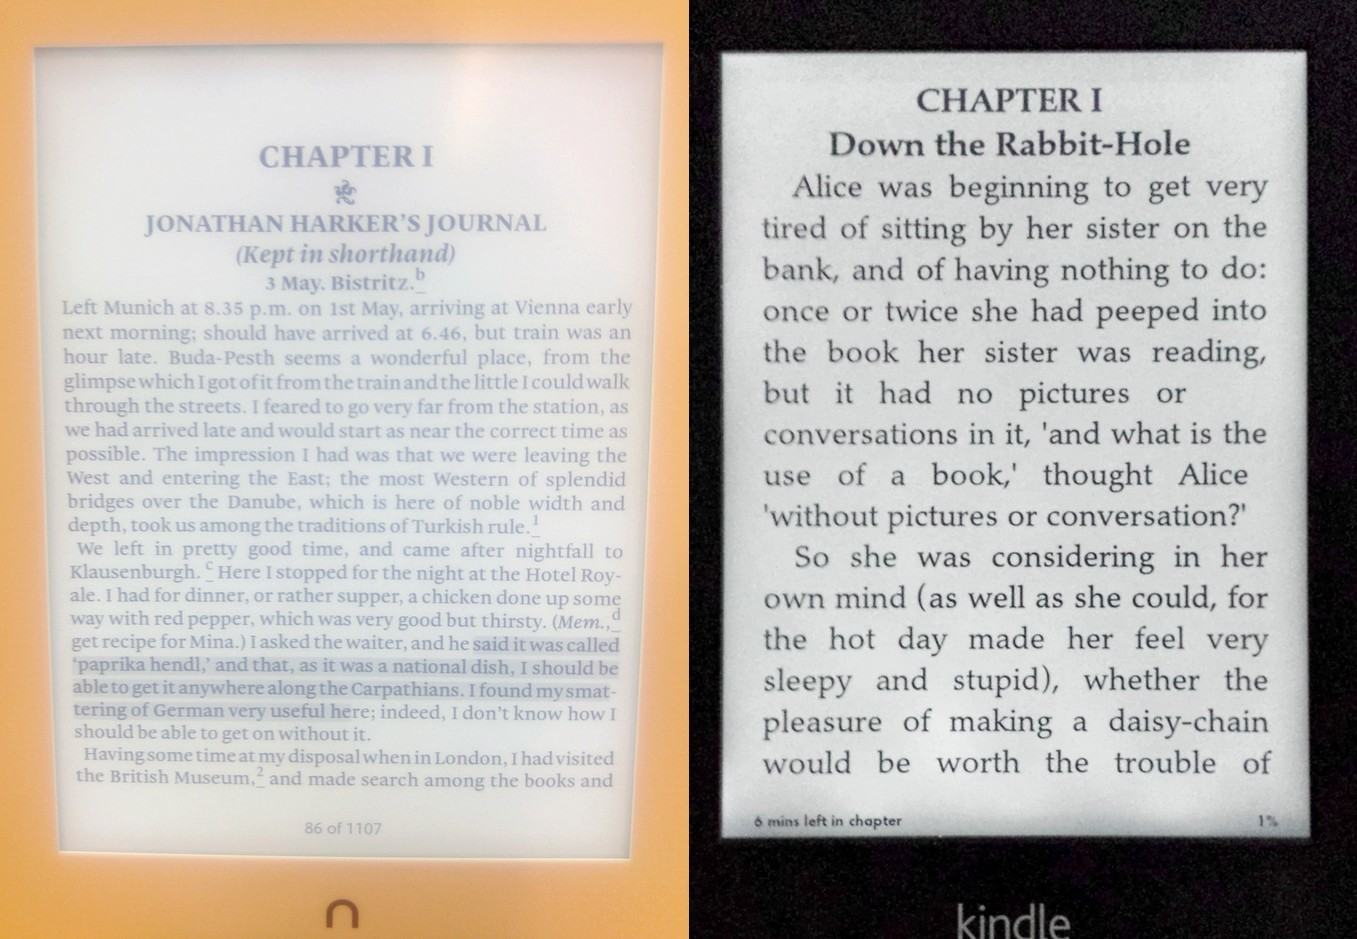 Nook GlowLight Plus vs Kindle Paperwhite